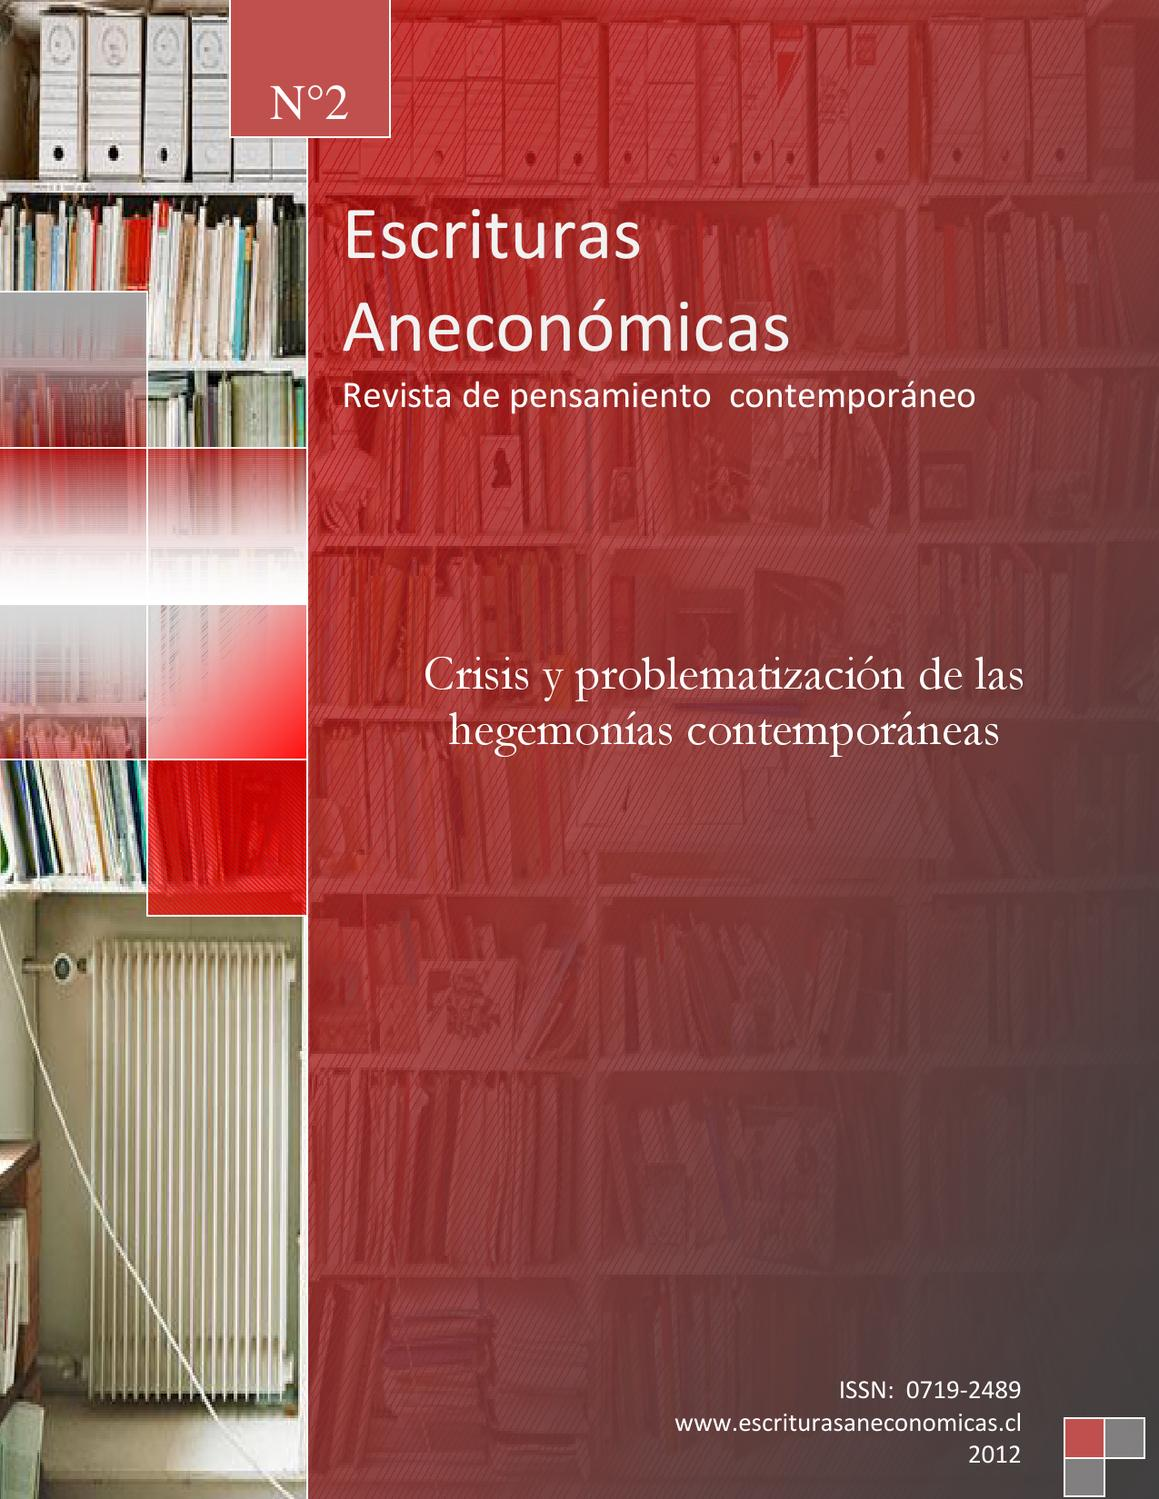 Escrituras Aneconomicas 2 by Revista-Escrituras Aneconómicas - issuu